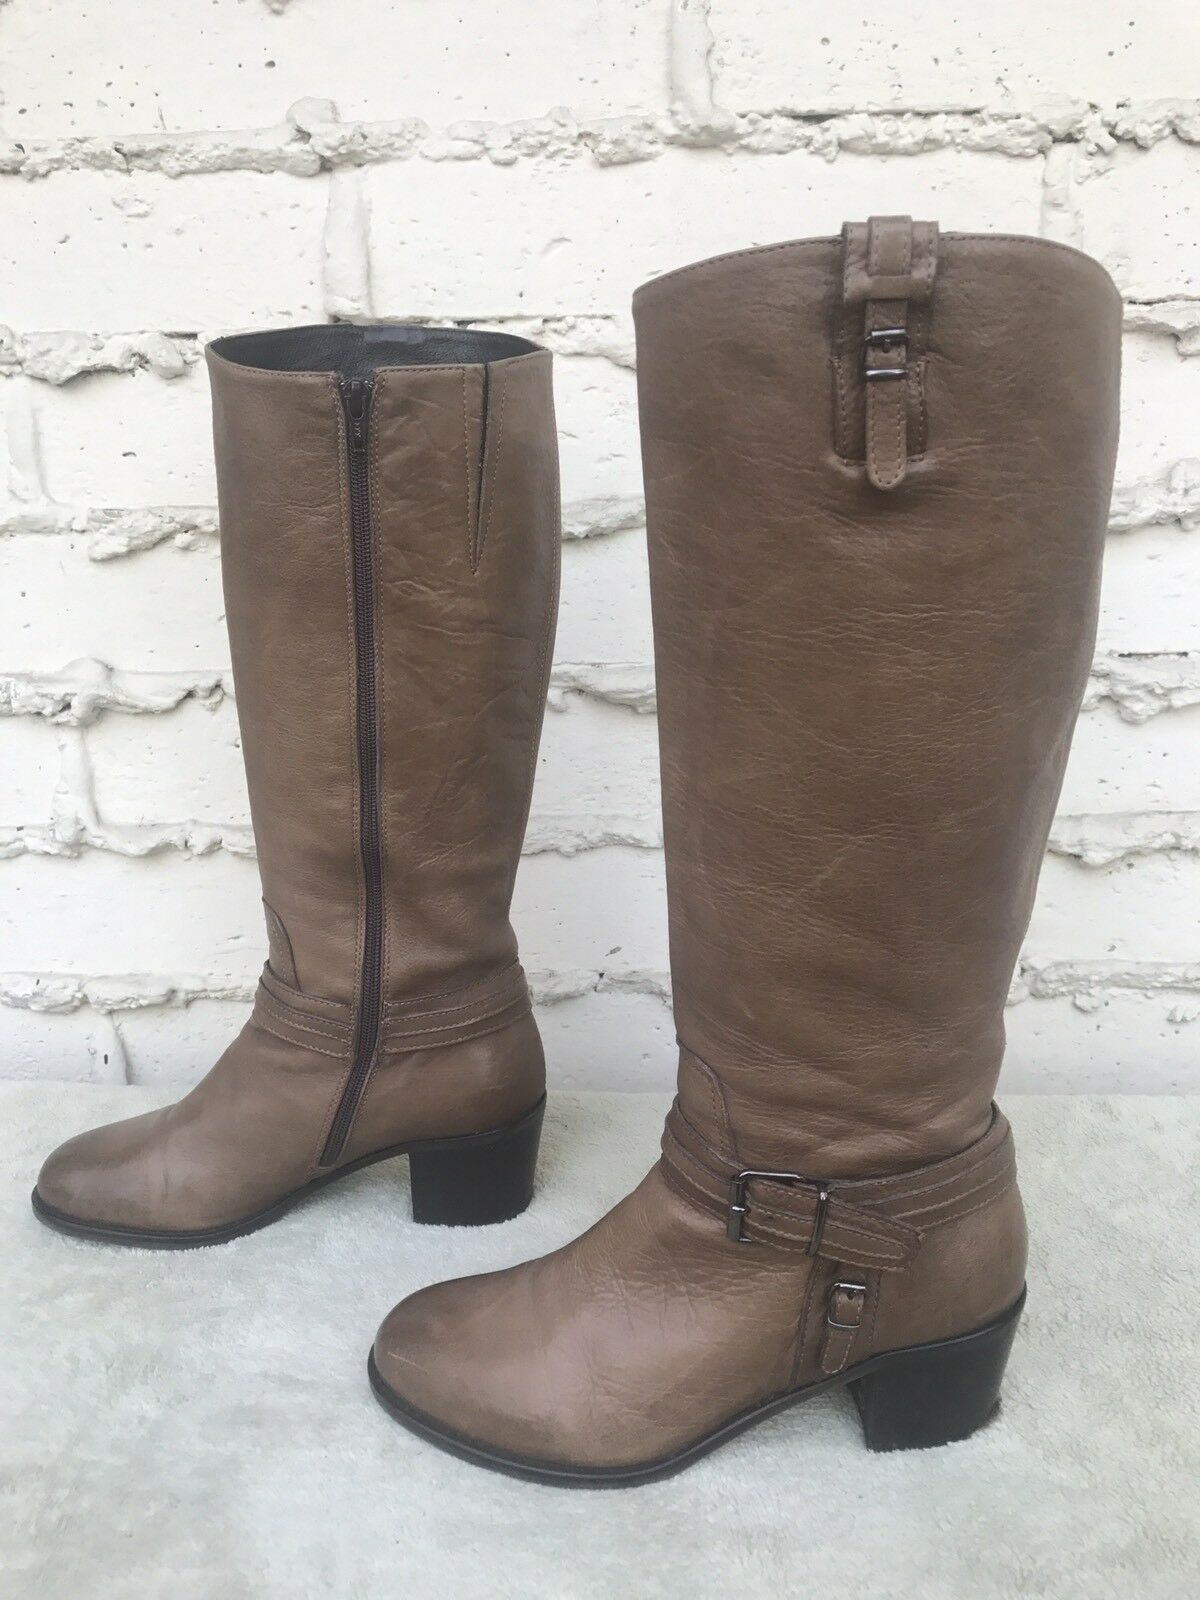 EUC Cordani Potter Women's Brown Leather Knee High Boots US 7.5 580